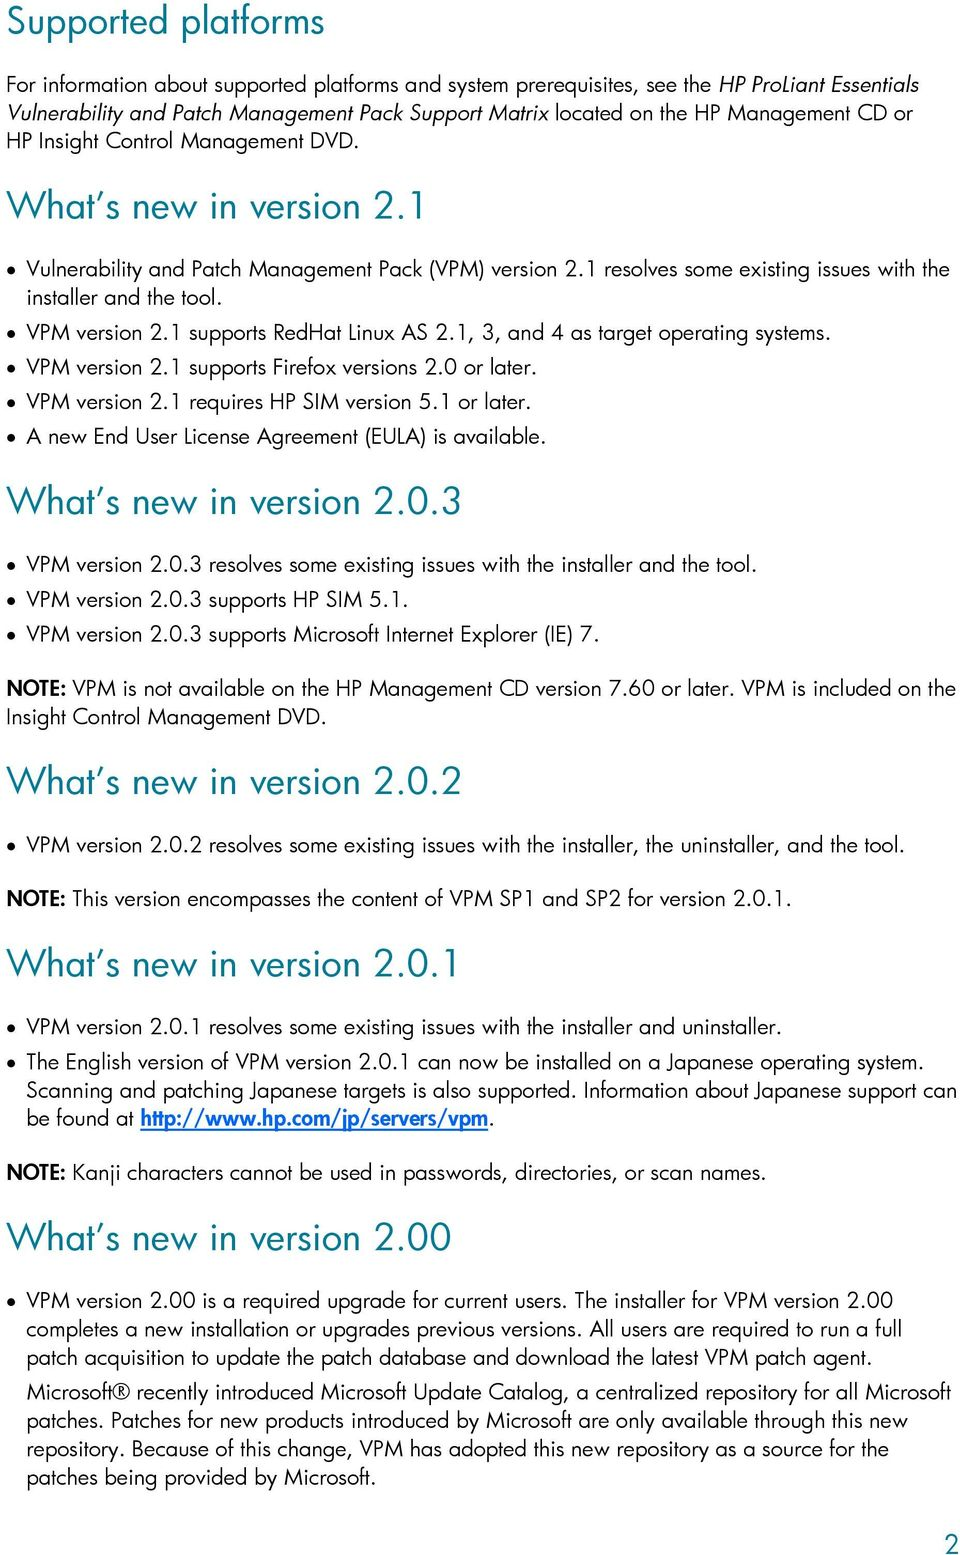 VPM version 2.1 supports RedHat Linux AS 2.1, 3, and 4 as target operating systems. VPM version 2.1 supports Firefox versions 2.0 or later. VPM version 2.1 requires HP SIM version 5.1 or later.